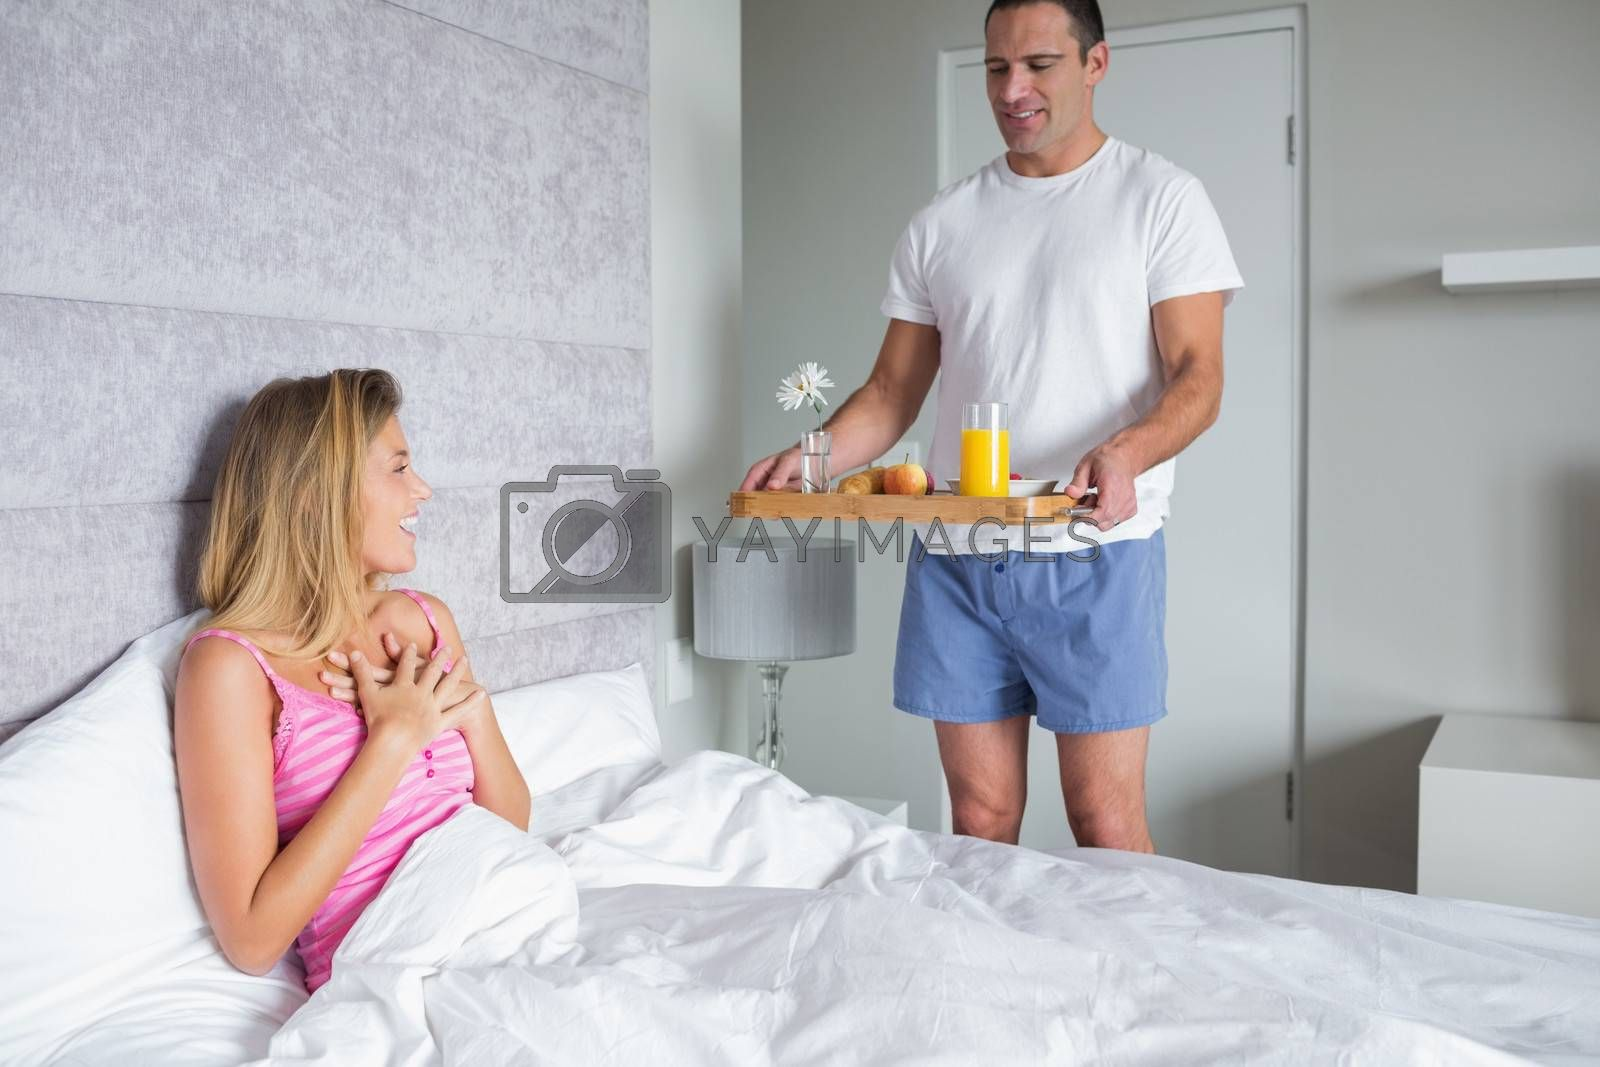 Happy woman surprised by partner bringing breakfast in bed at home in bedroom